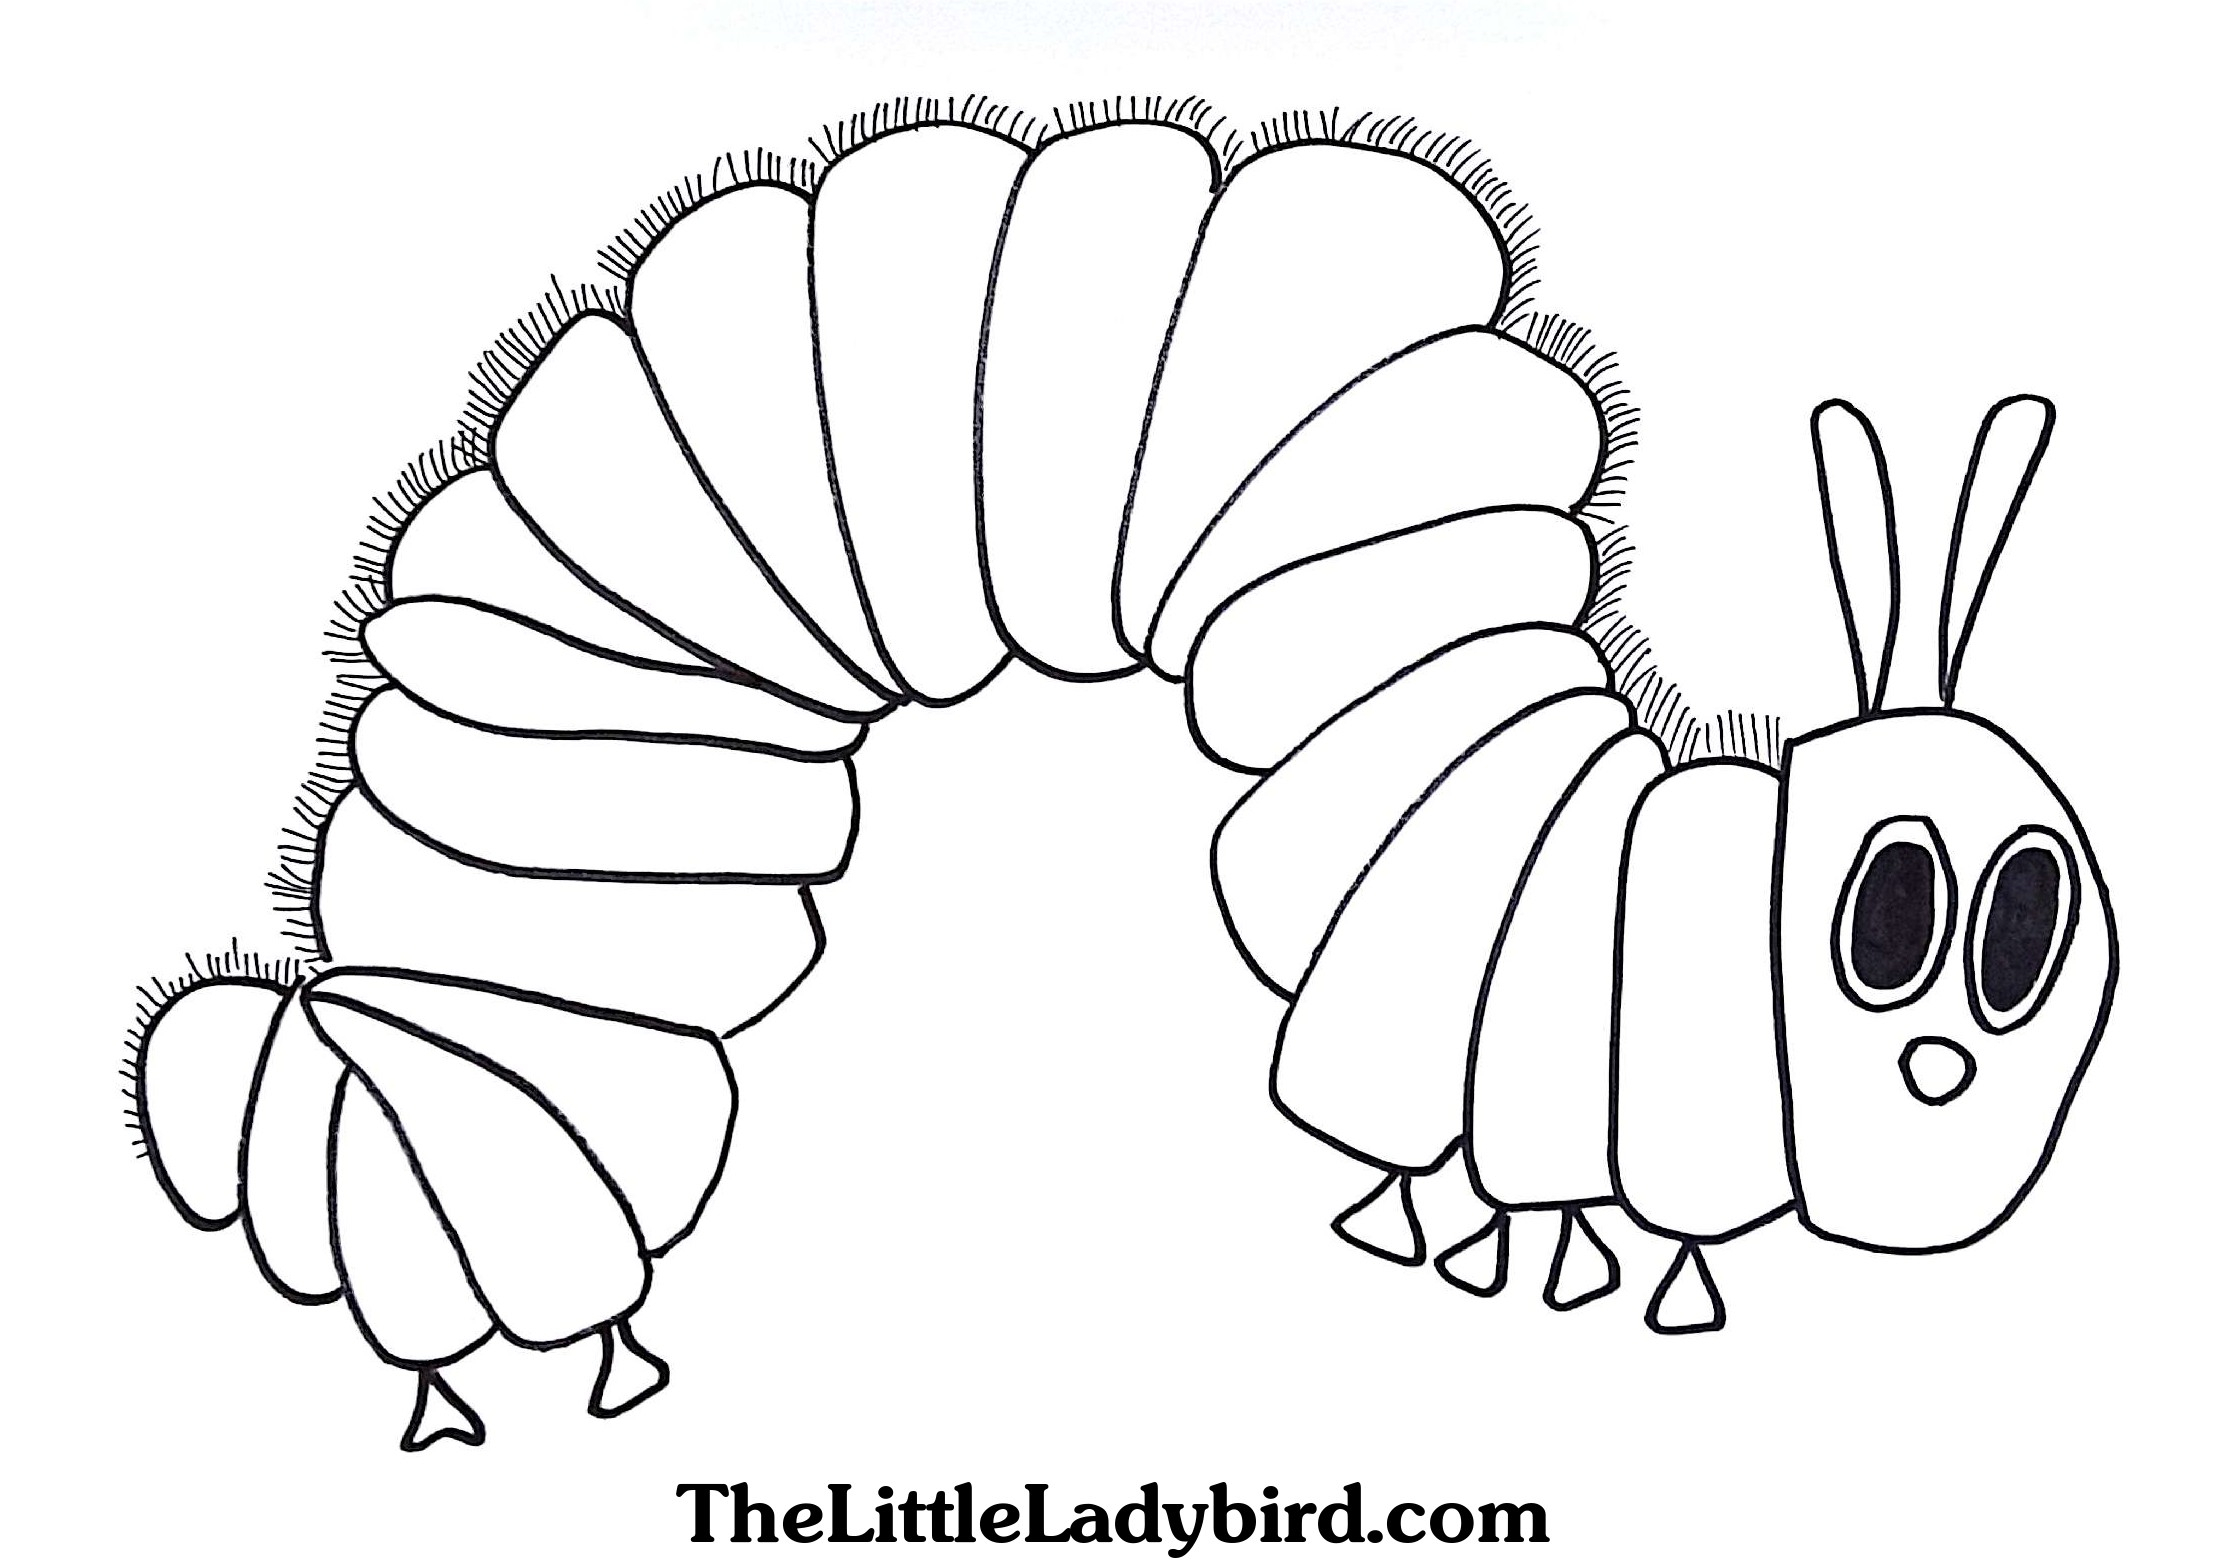 Hungry Caterpillar Coloring Pages Free The Hungry Caterpillar Coloring Page Thelittleladybird